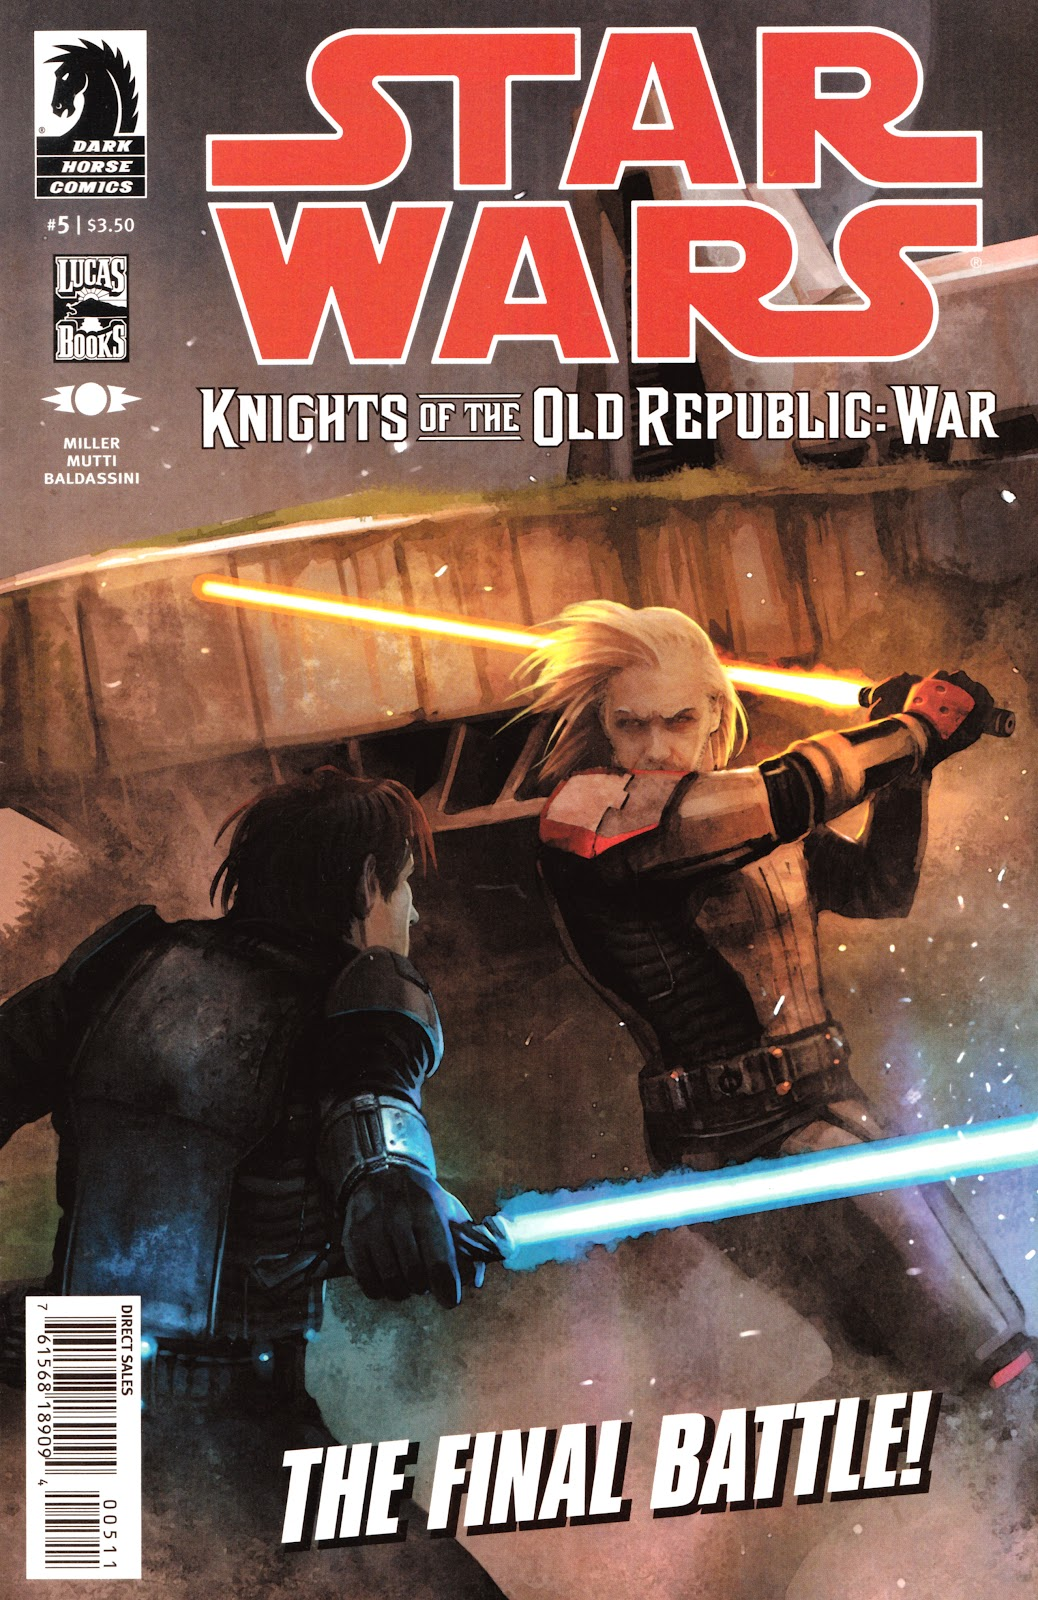 Star Wars: Knights Of The Old Republic - War 5 Page 1